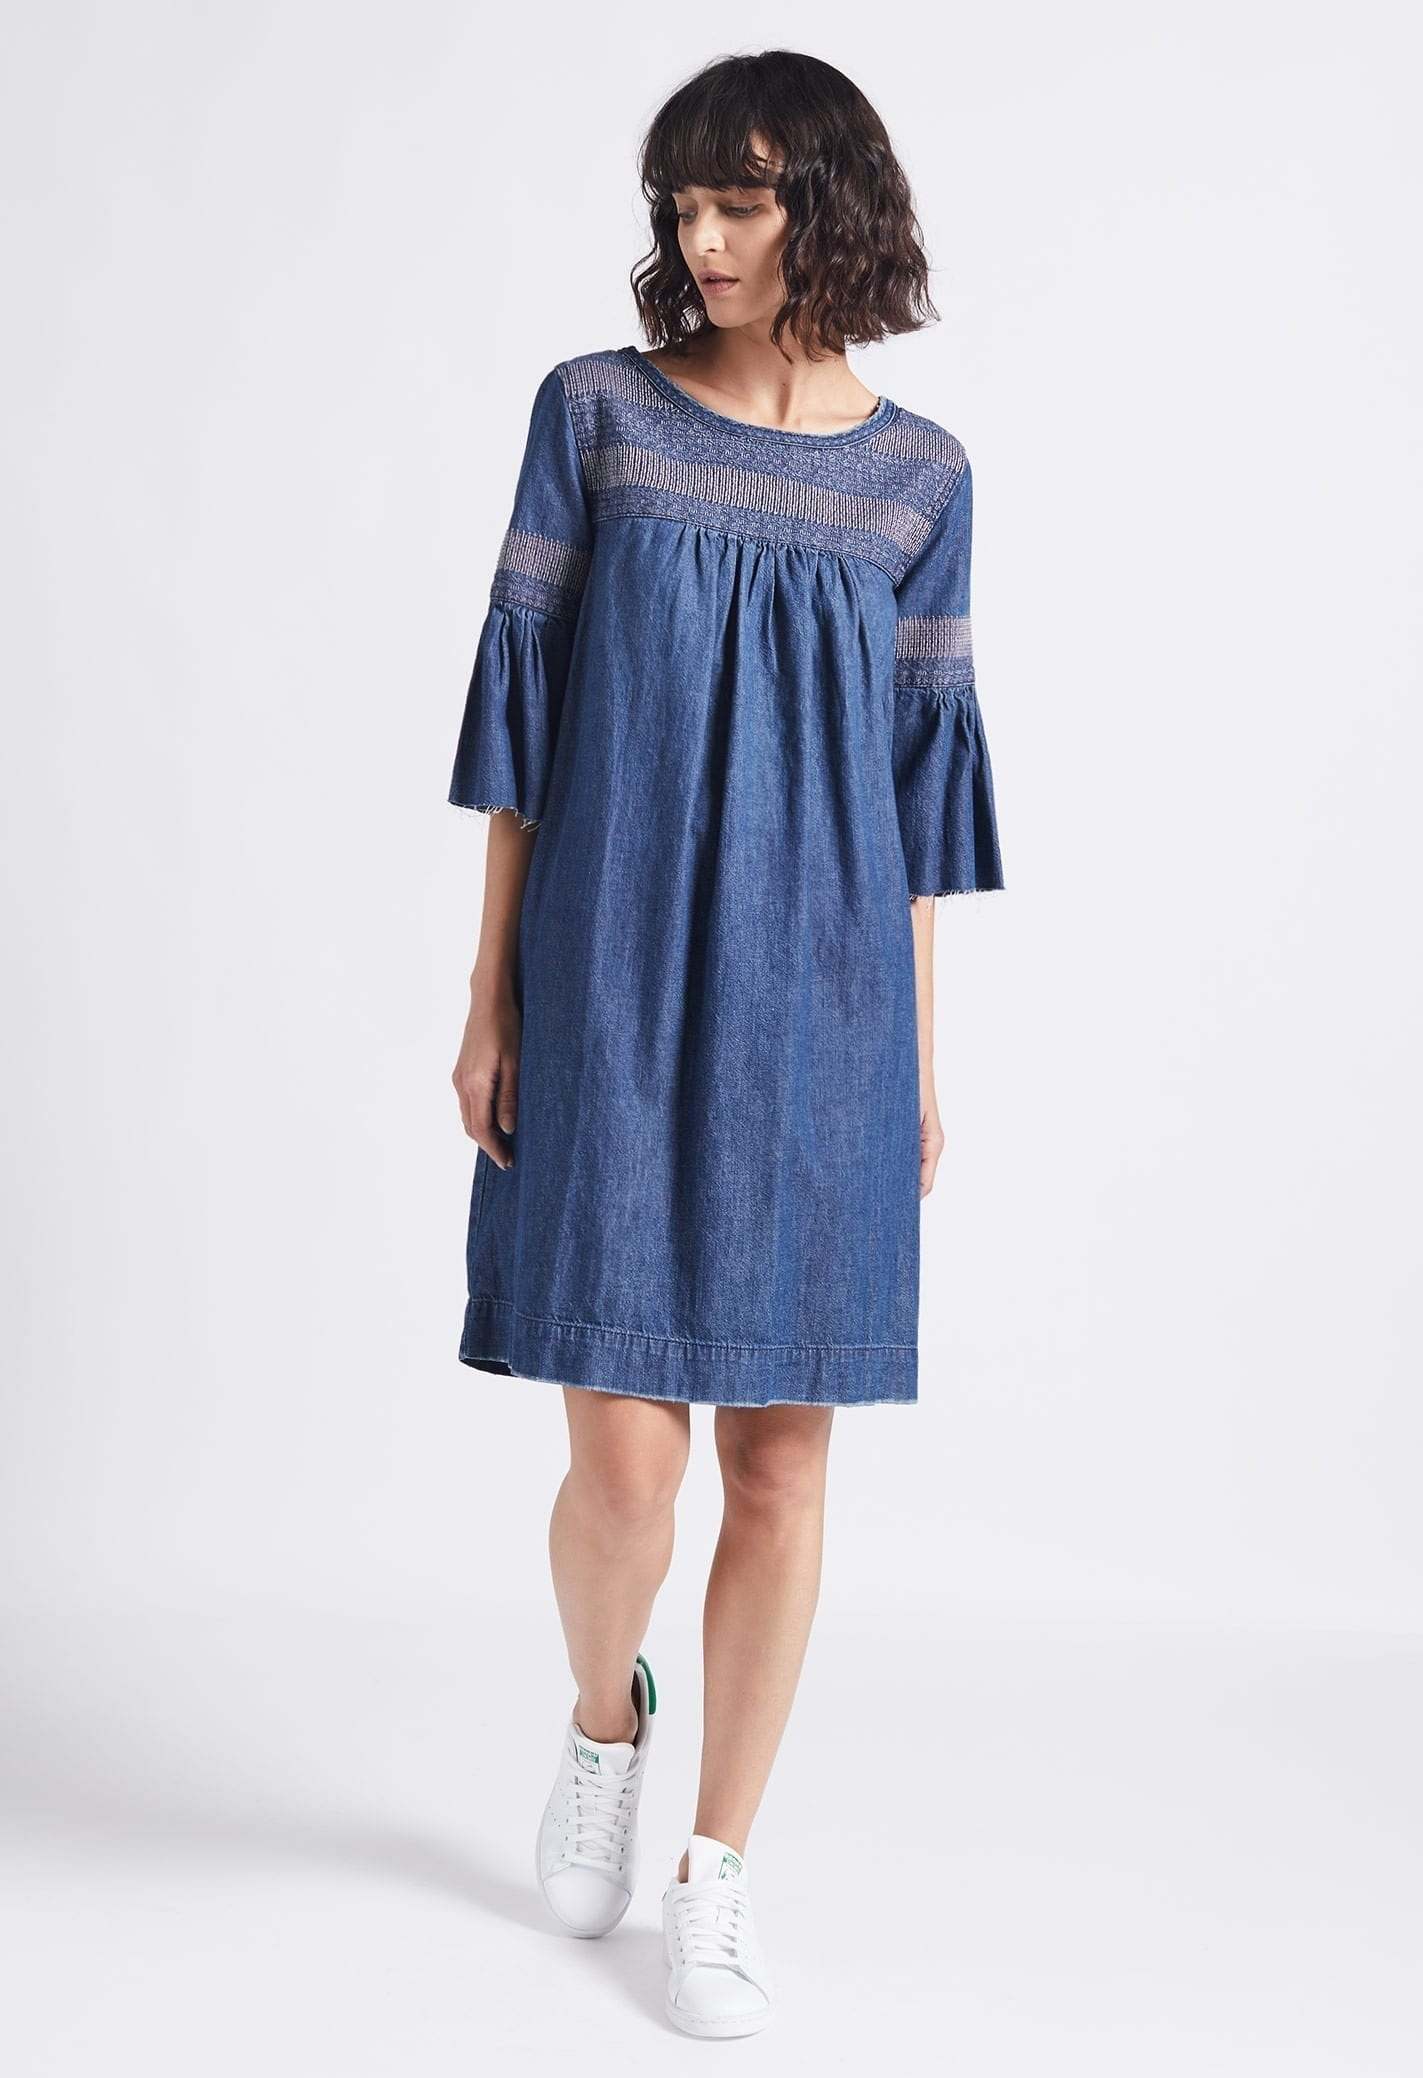 777b7b7f29 CURRENT ELLIOTT The Abigail Embroidery Navy Blue Dress - We Select ...